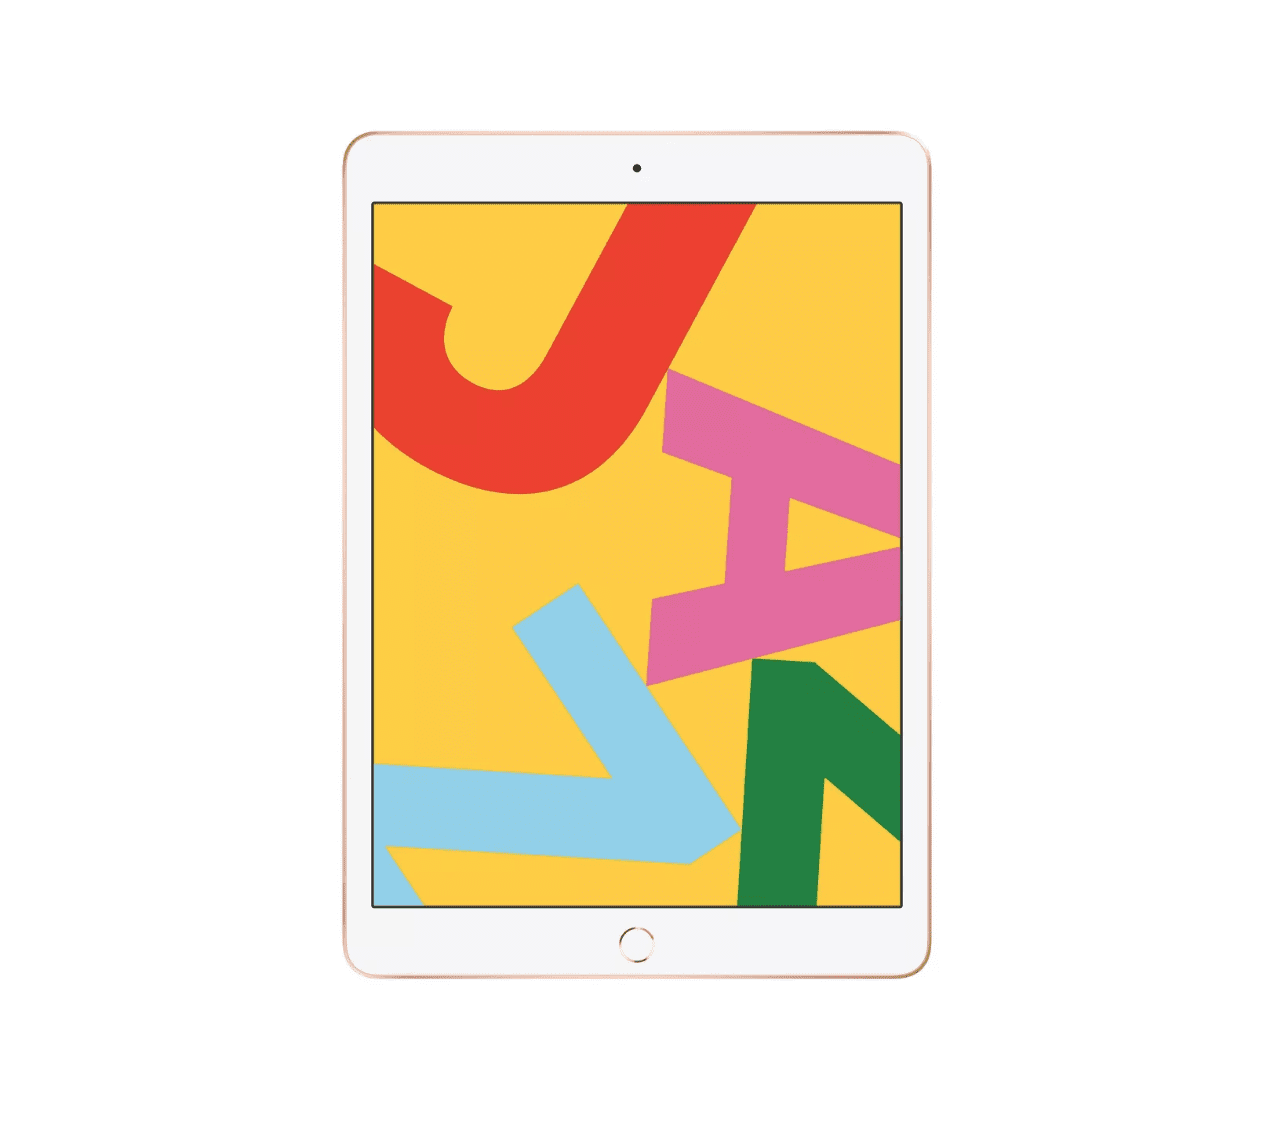 Apple iPad 10.2-inch Wi-Fi Only (7th Generation)